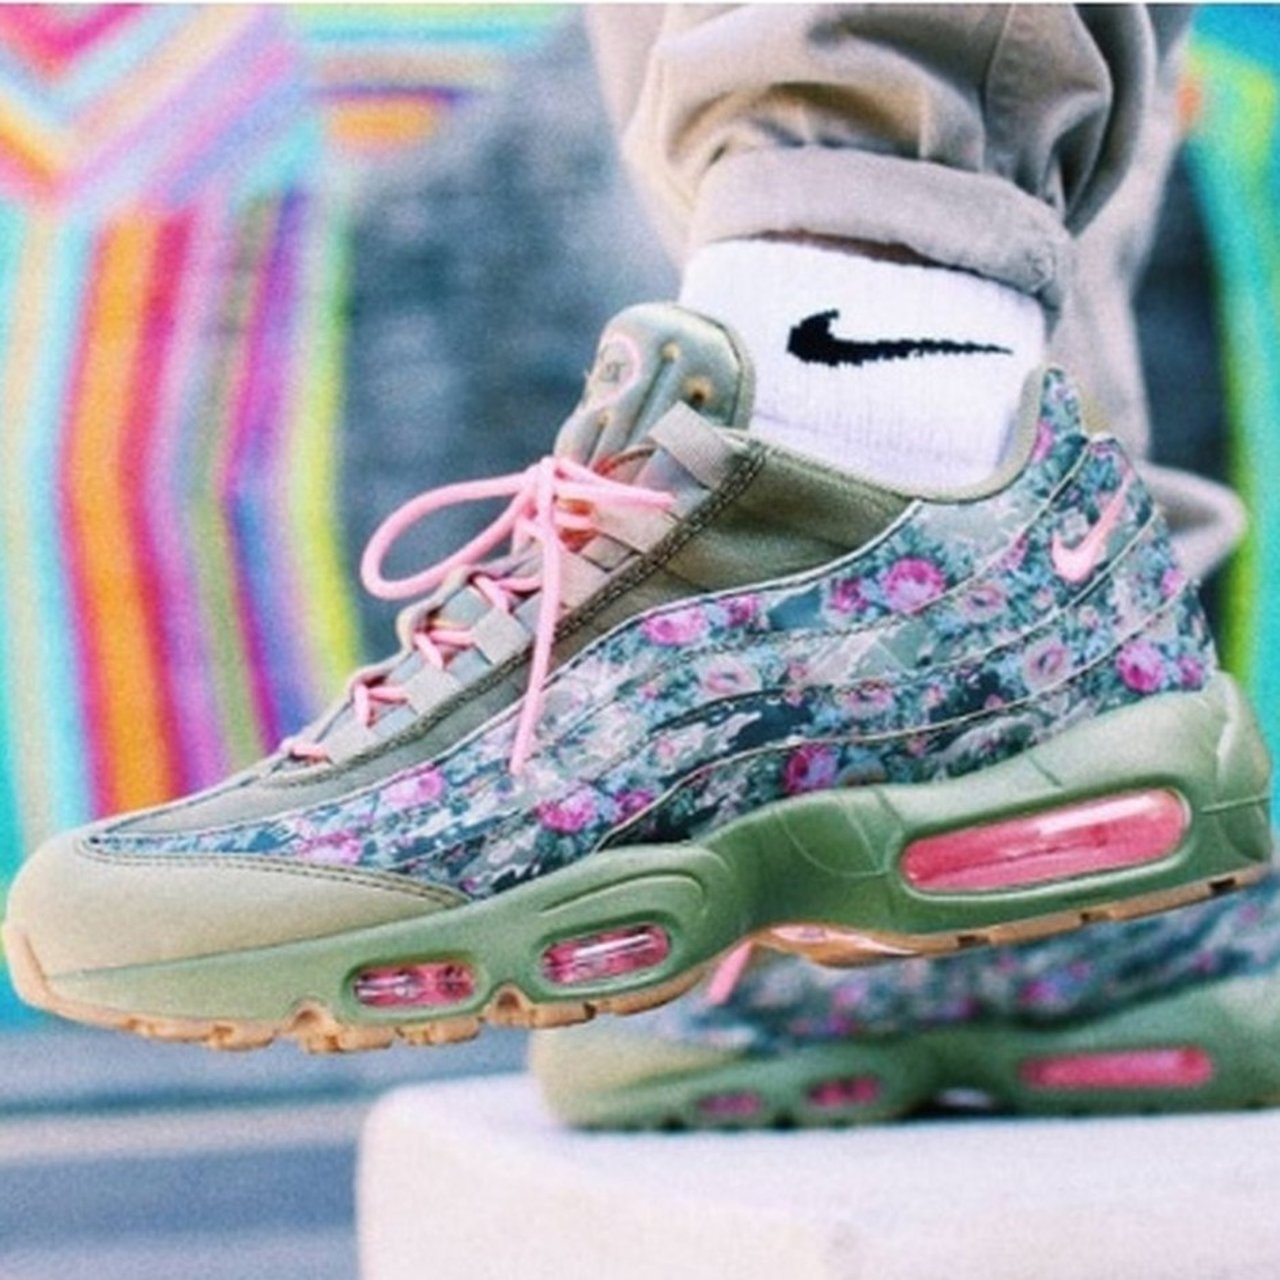 6a4fab6abe Nike air max 95 Floral Camo trainers. Women's Size 4 UK. of - Depop